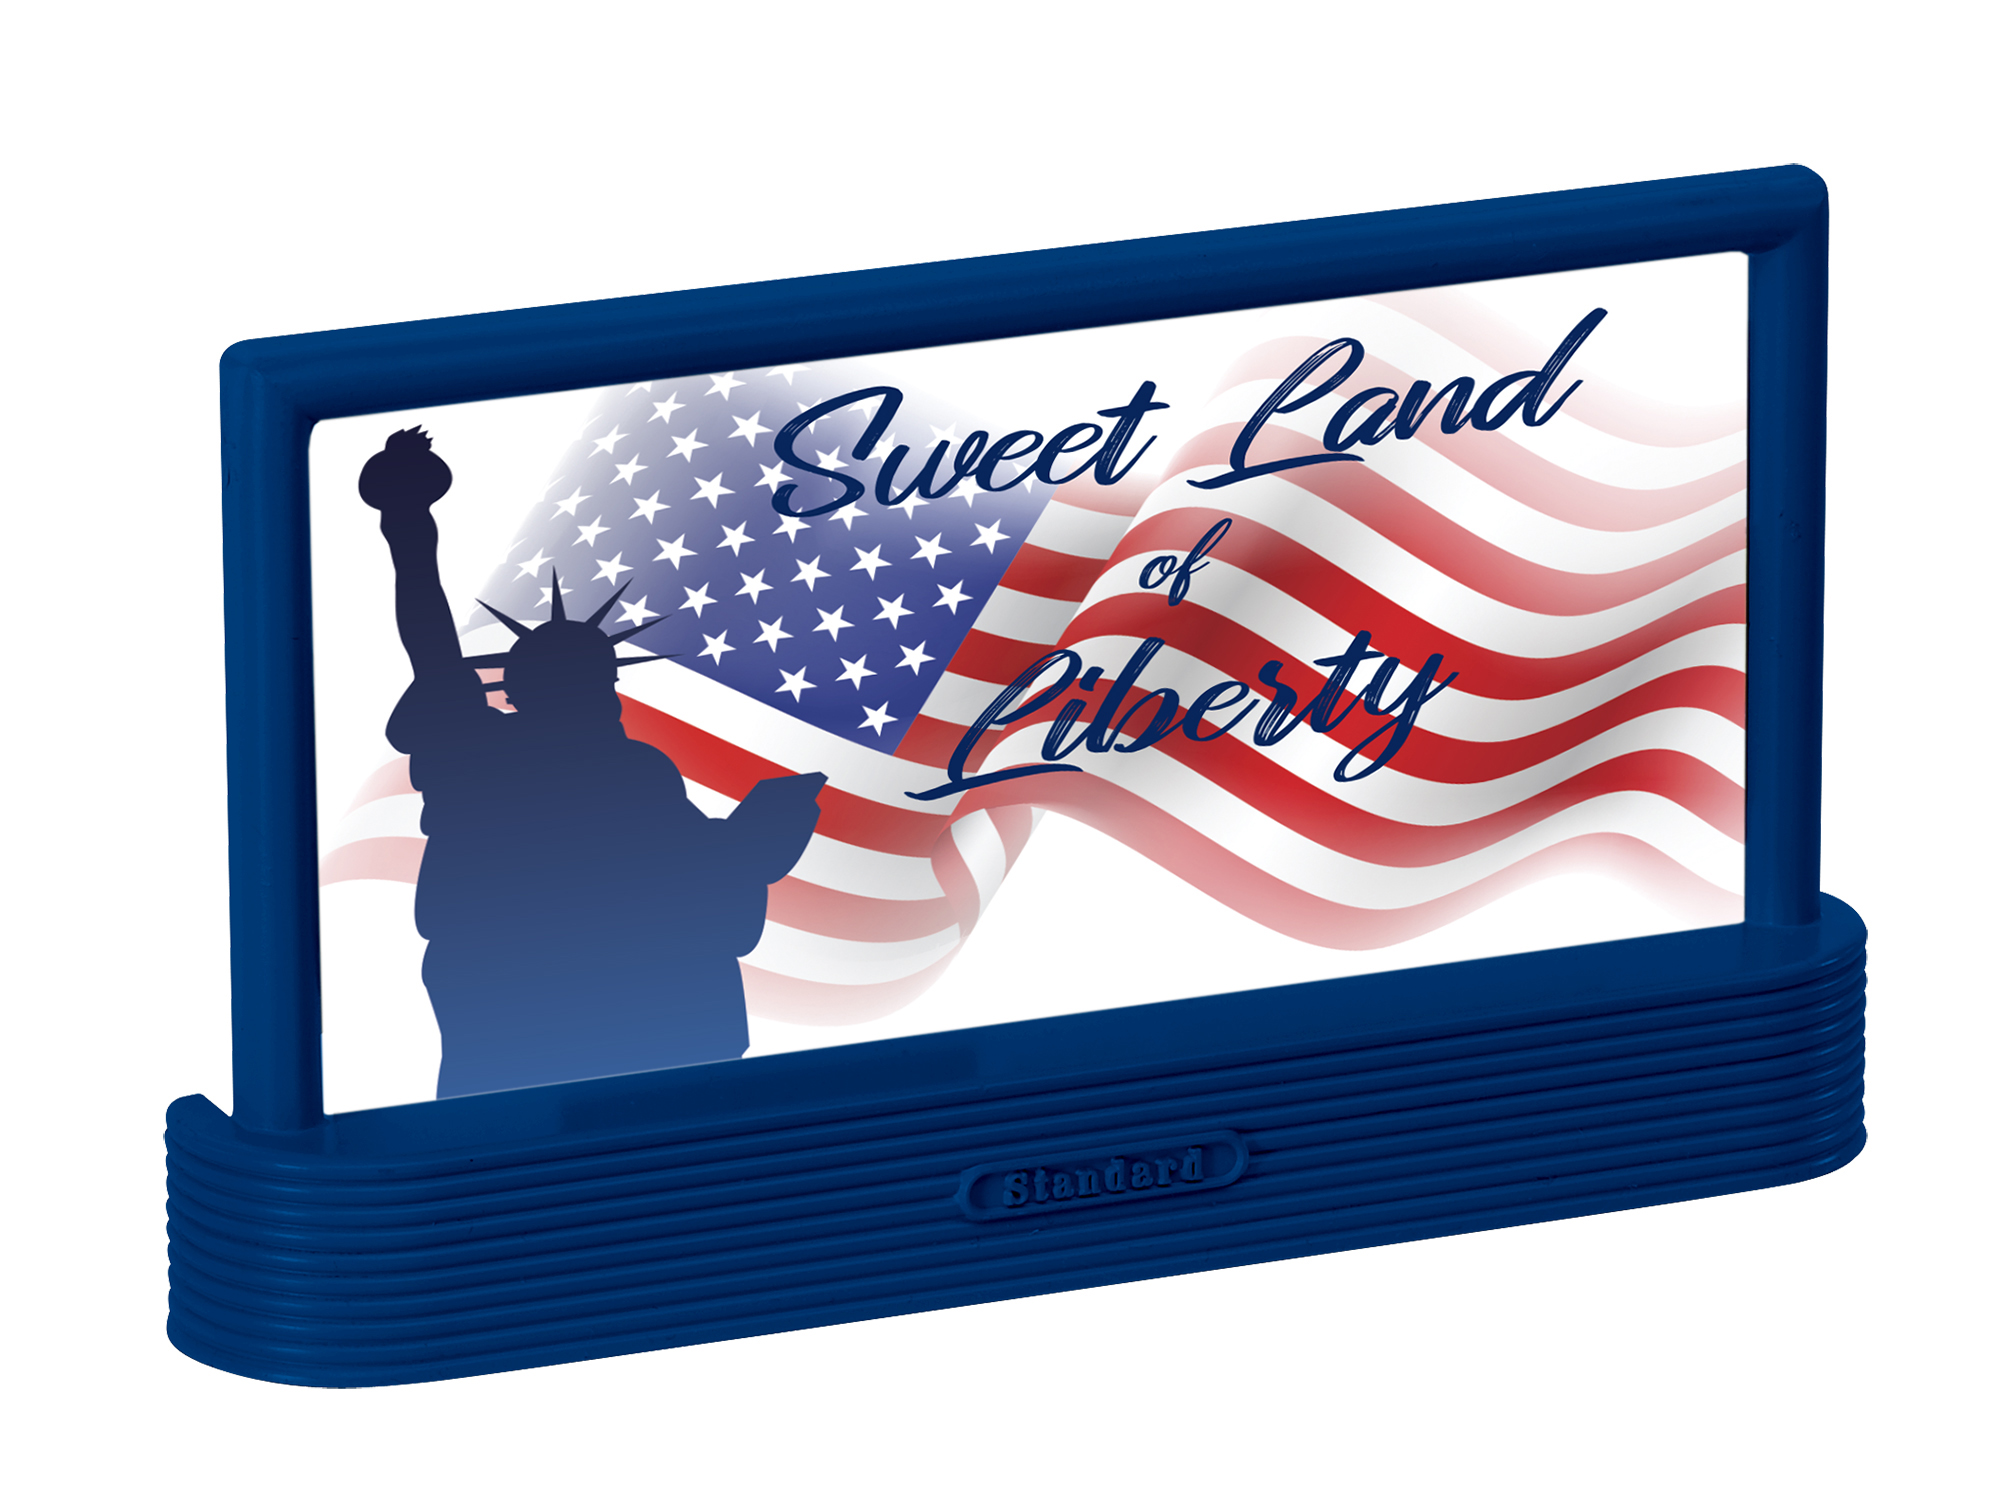 Stars & Stripes Billboard 3-pack - 'Sweet Land of Liberty' image